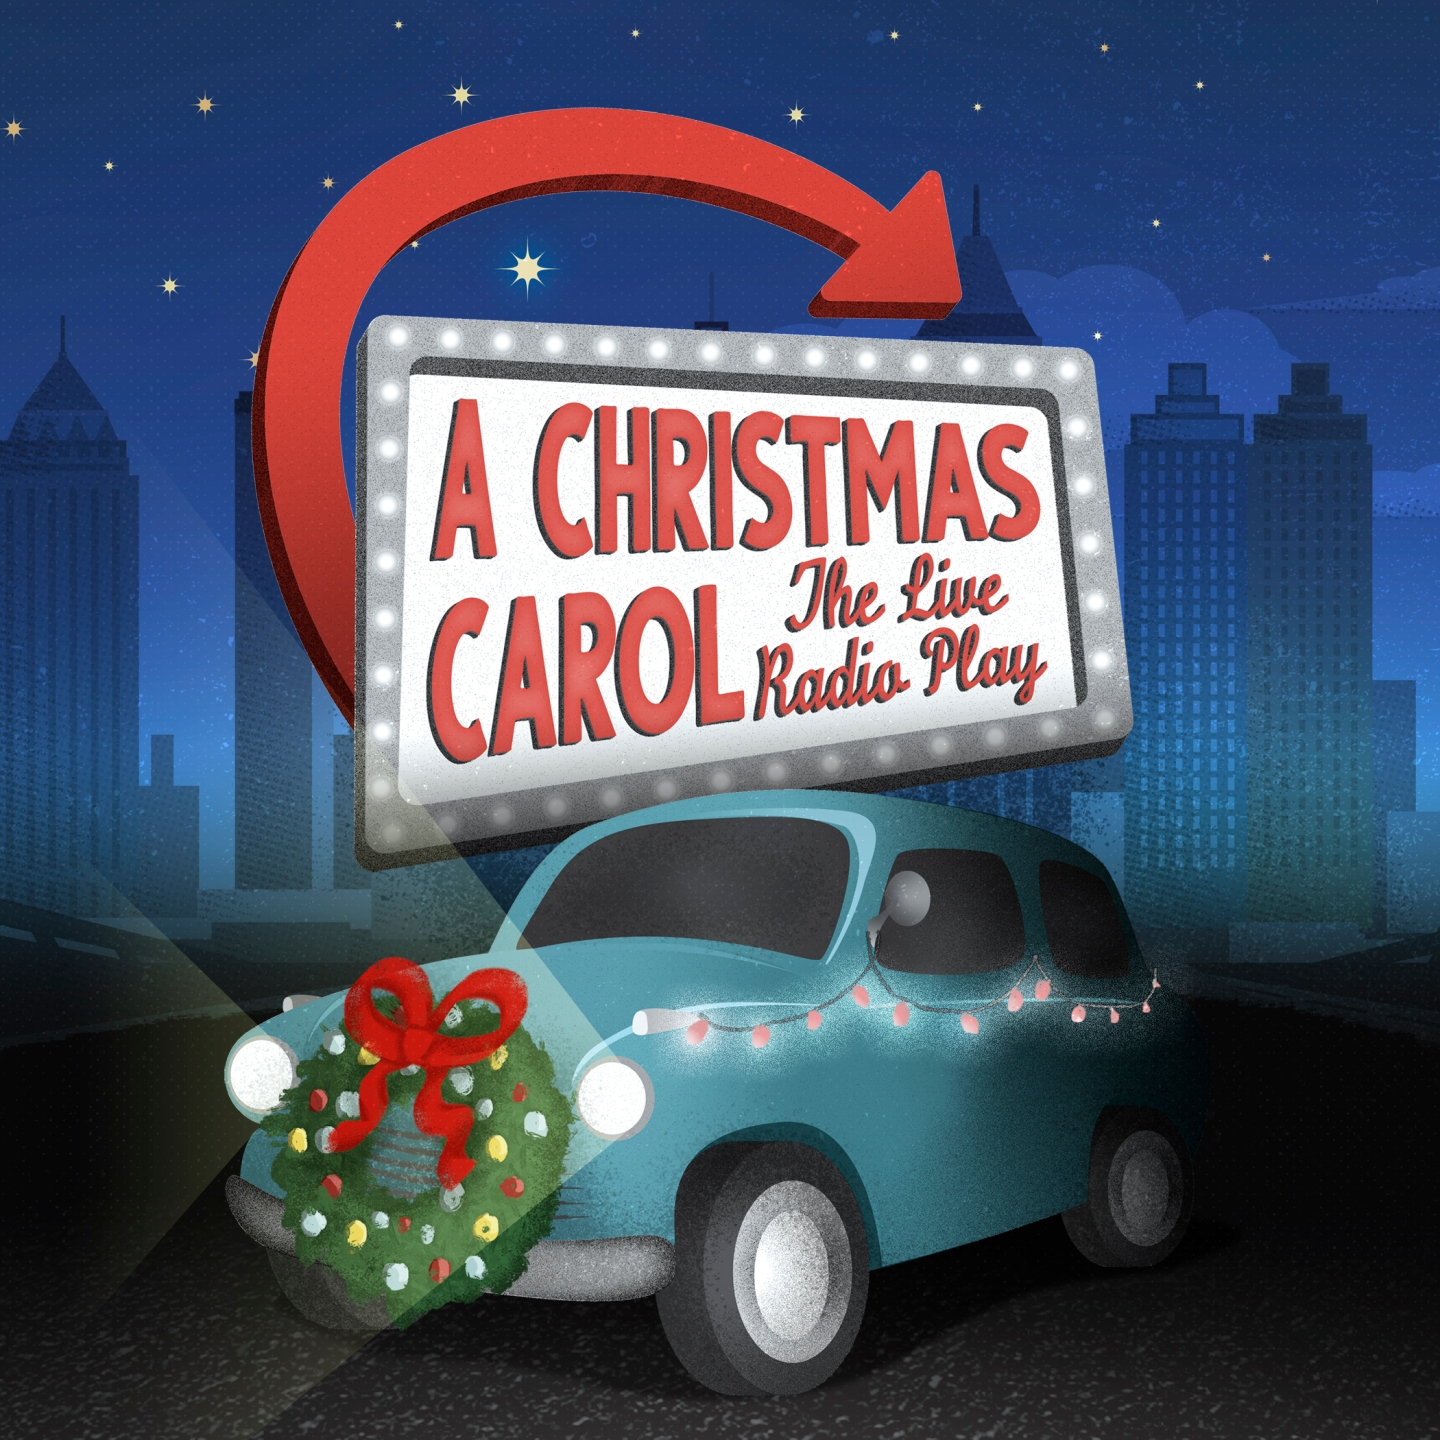 The Alliance Theater A Christmas Carol 2020 Alliance Theatre updates its 2020/21 Season with drive in